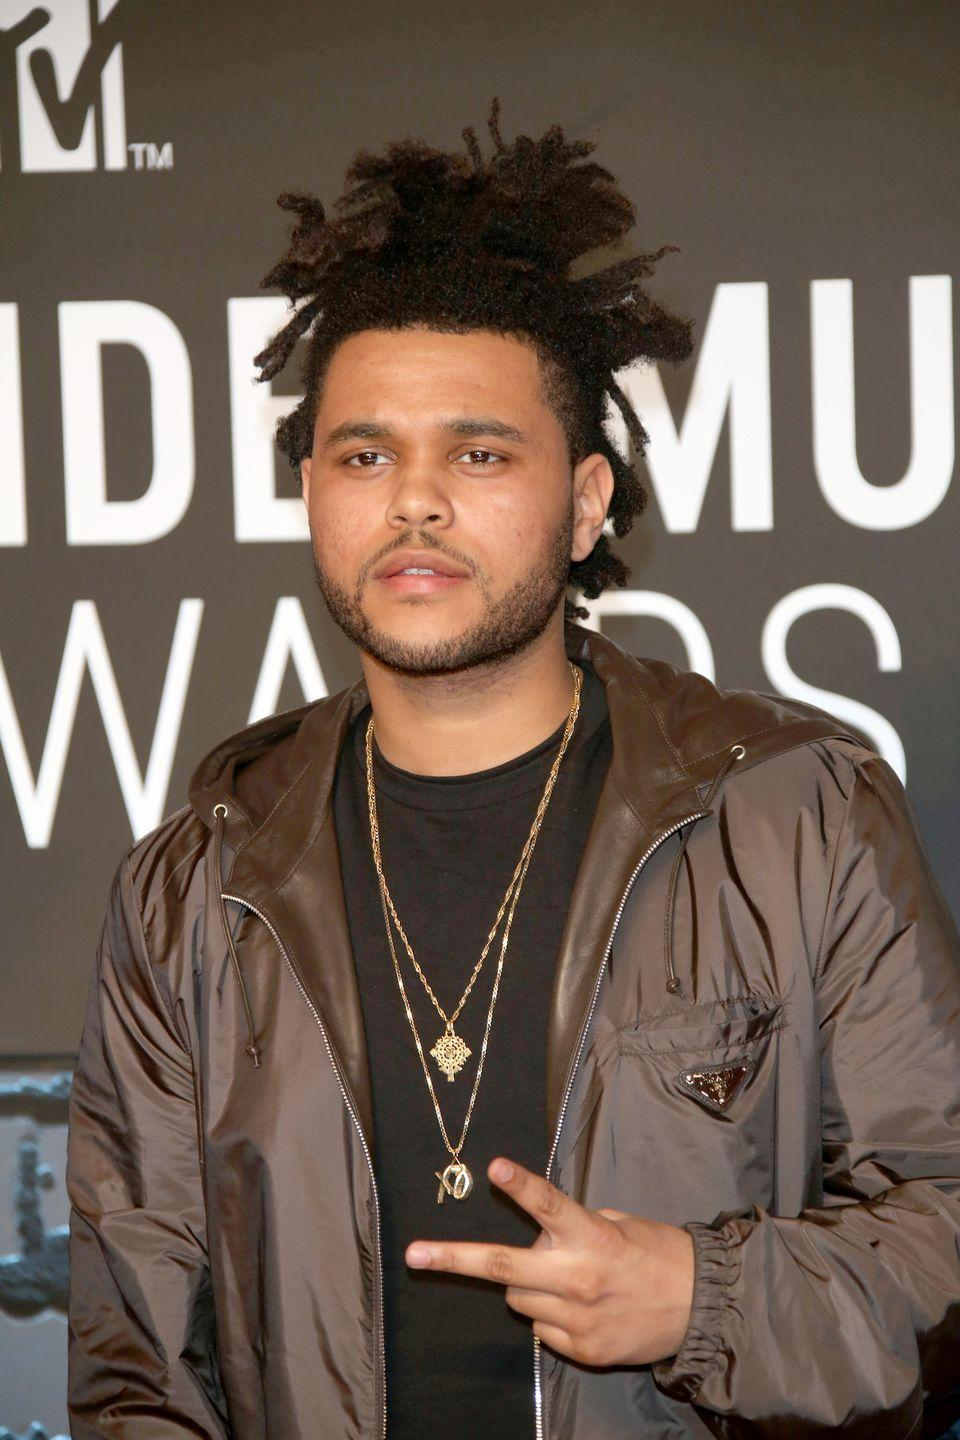 <p>The singer walked the red carpet of the MTV Music Video Awards wearing what become his signature look: locs and a goatee. </p>